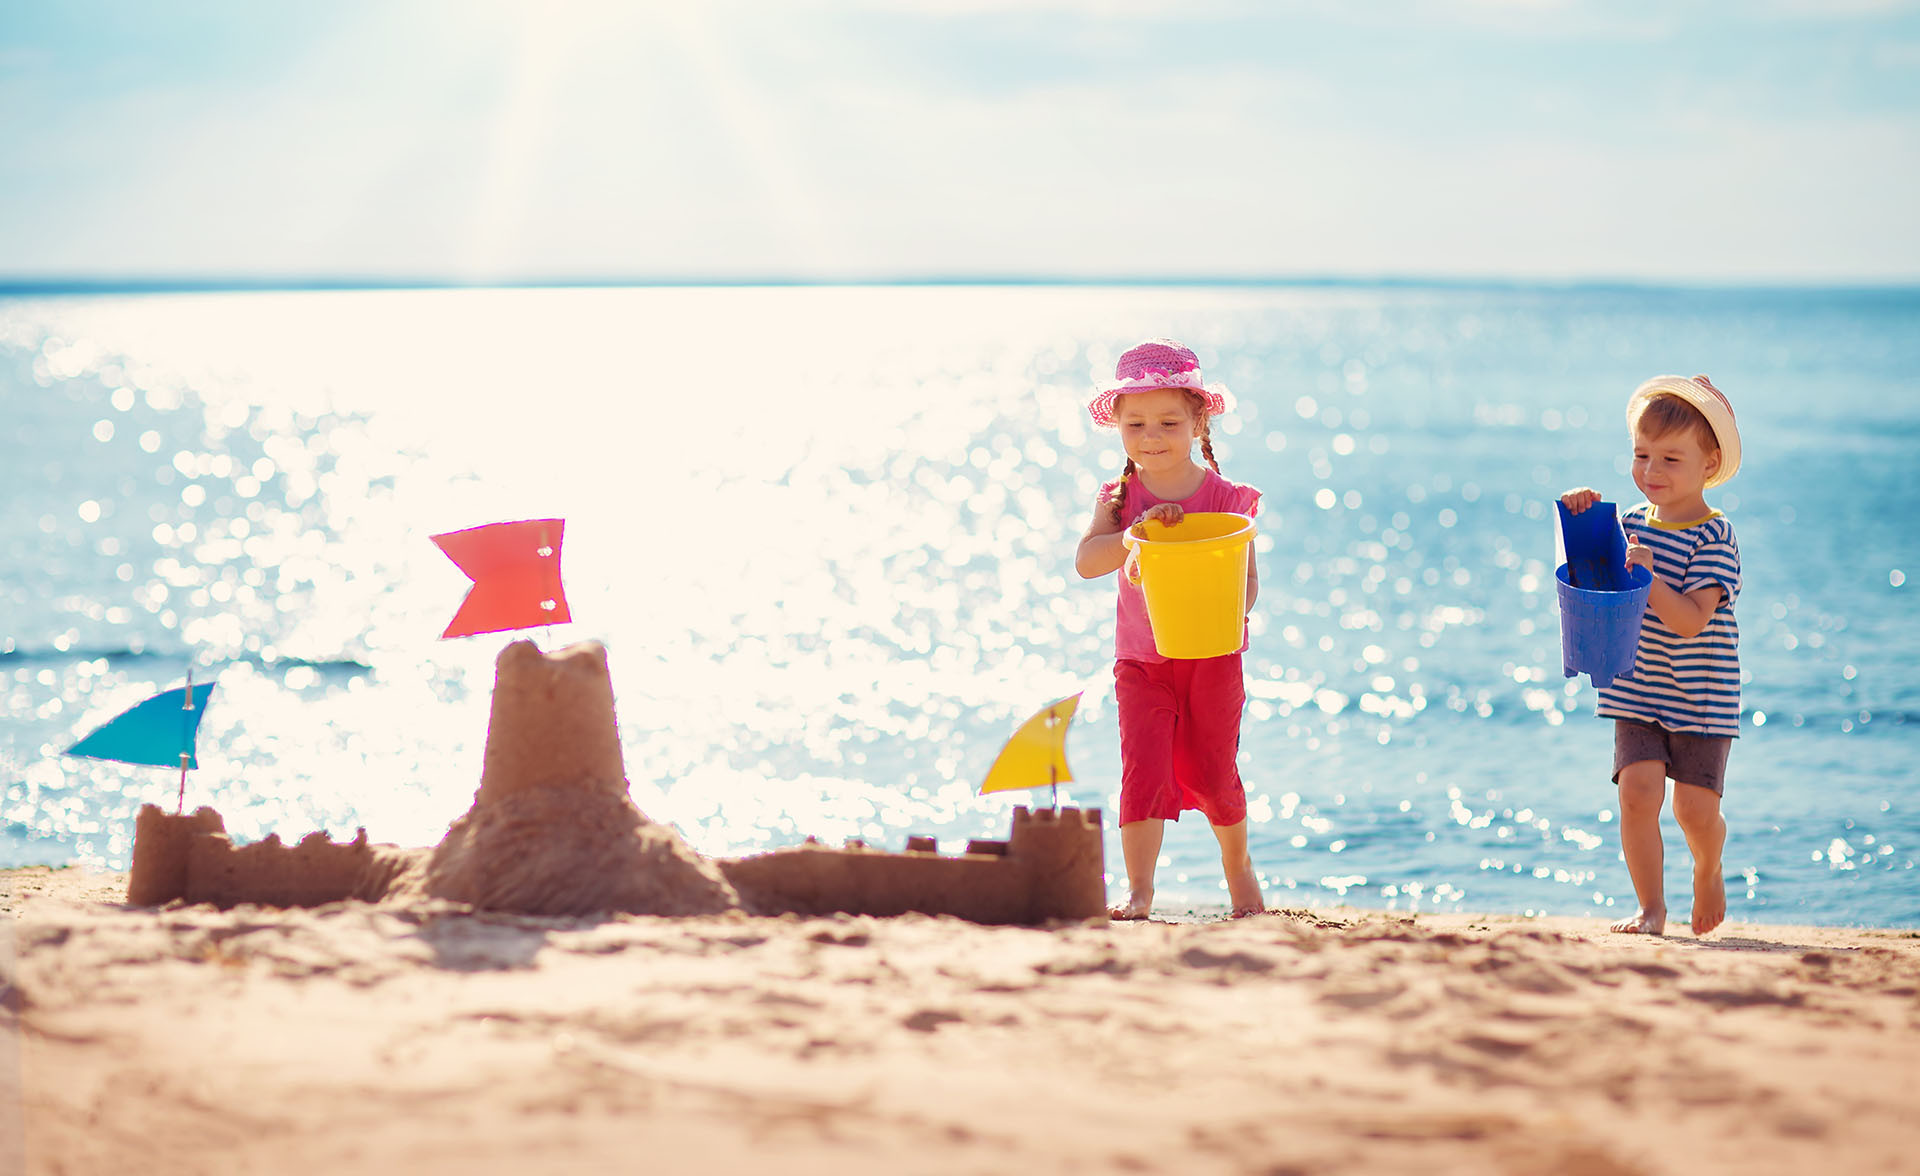 Two kids playing on the beach and building a sand castle